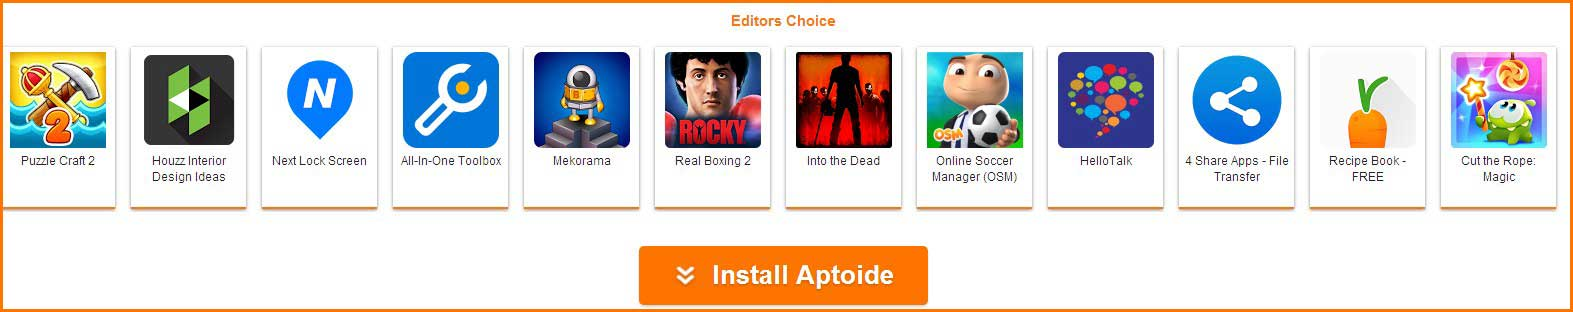 Aptoide Download and Install for PC